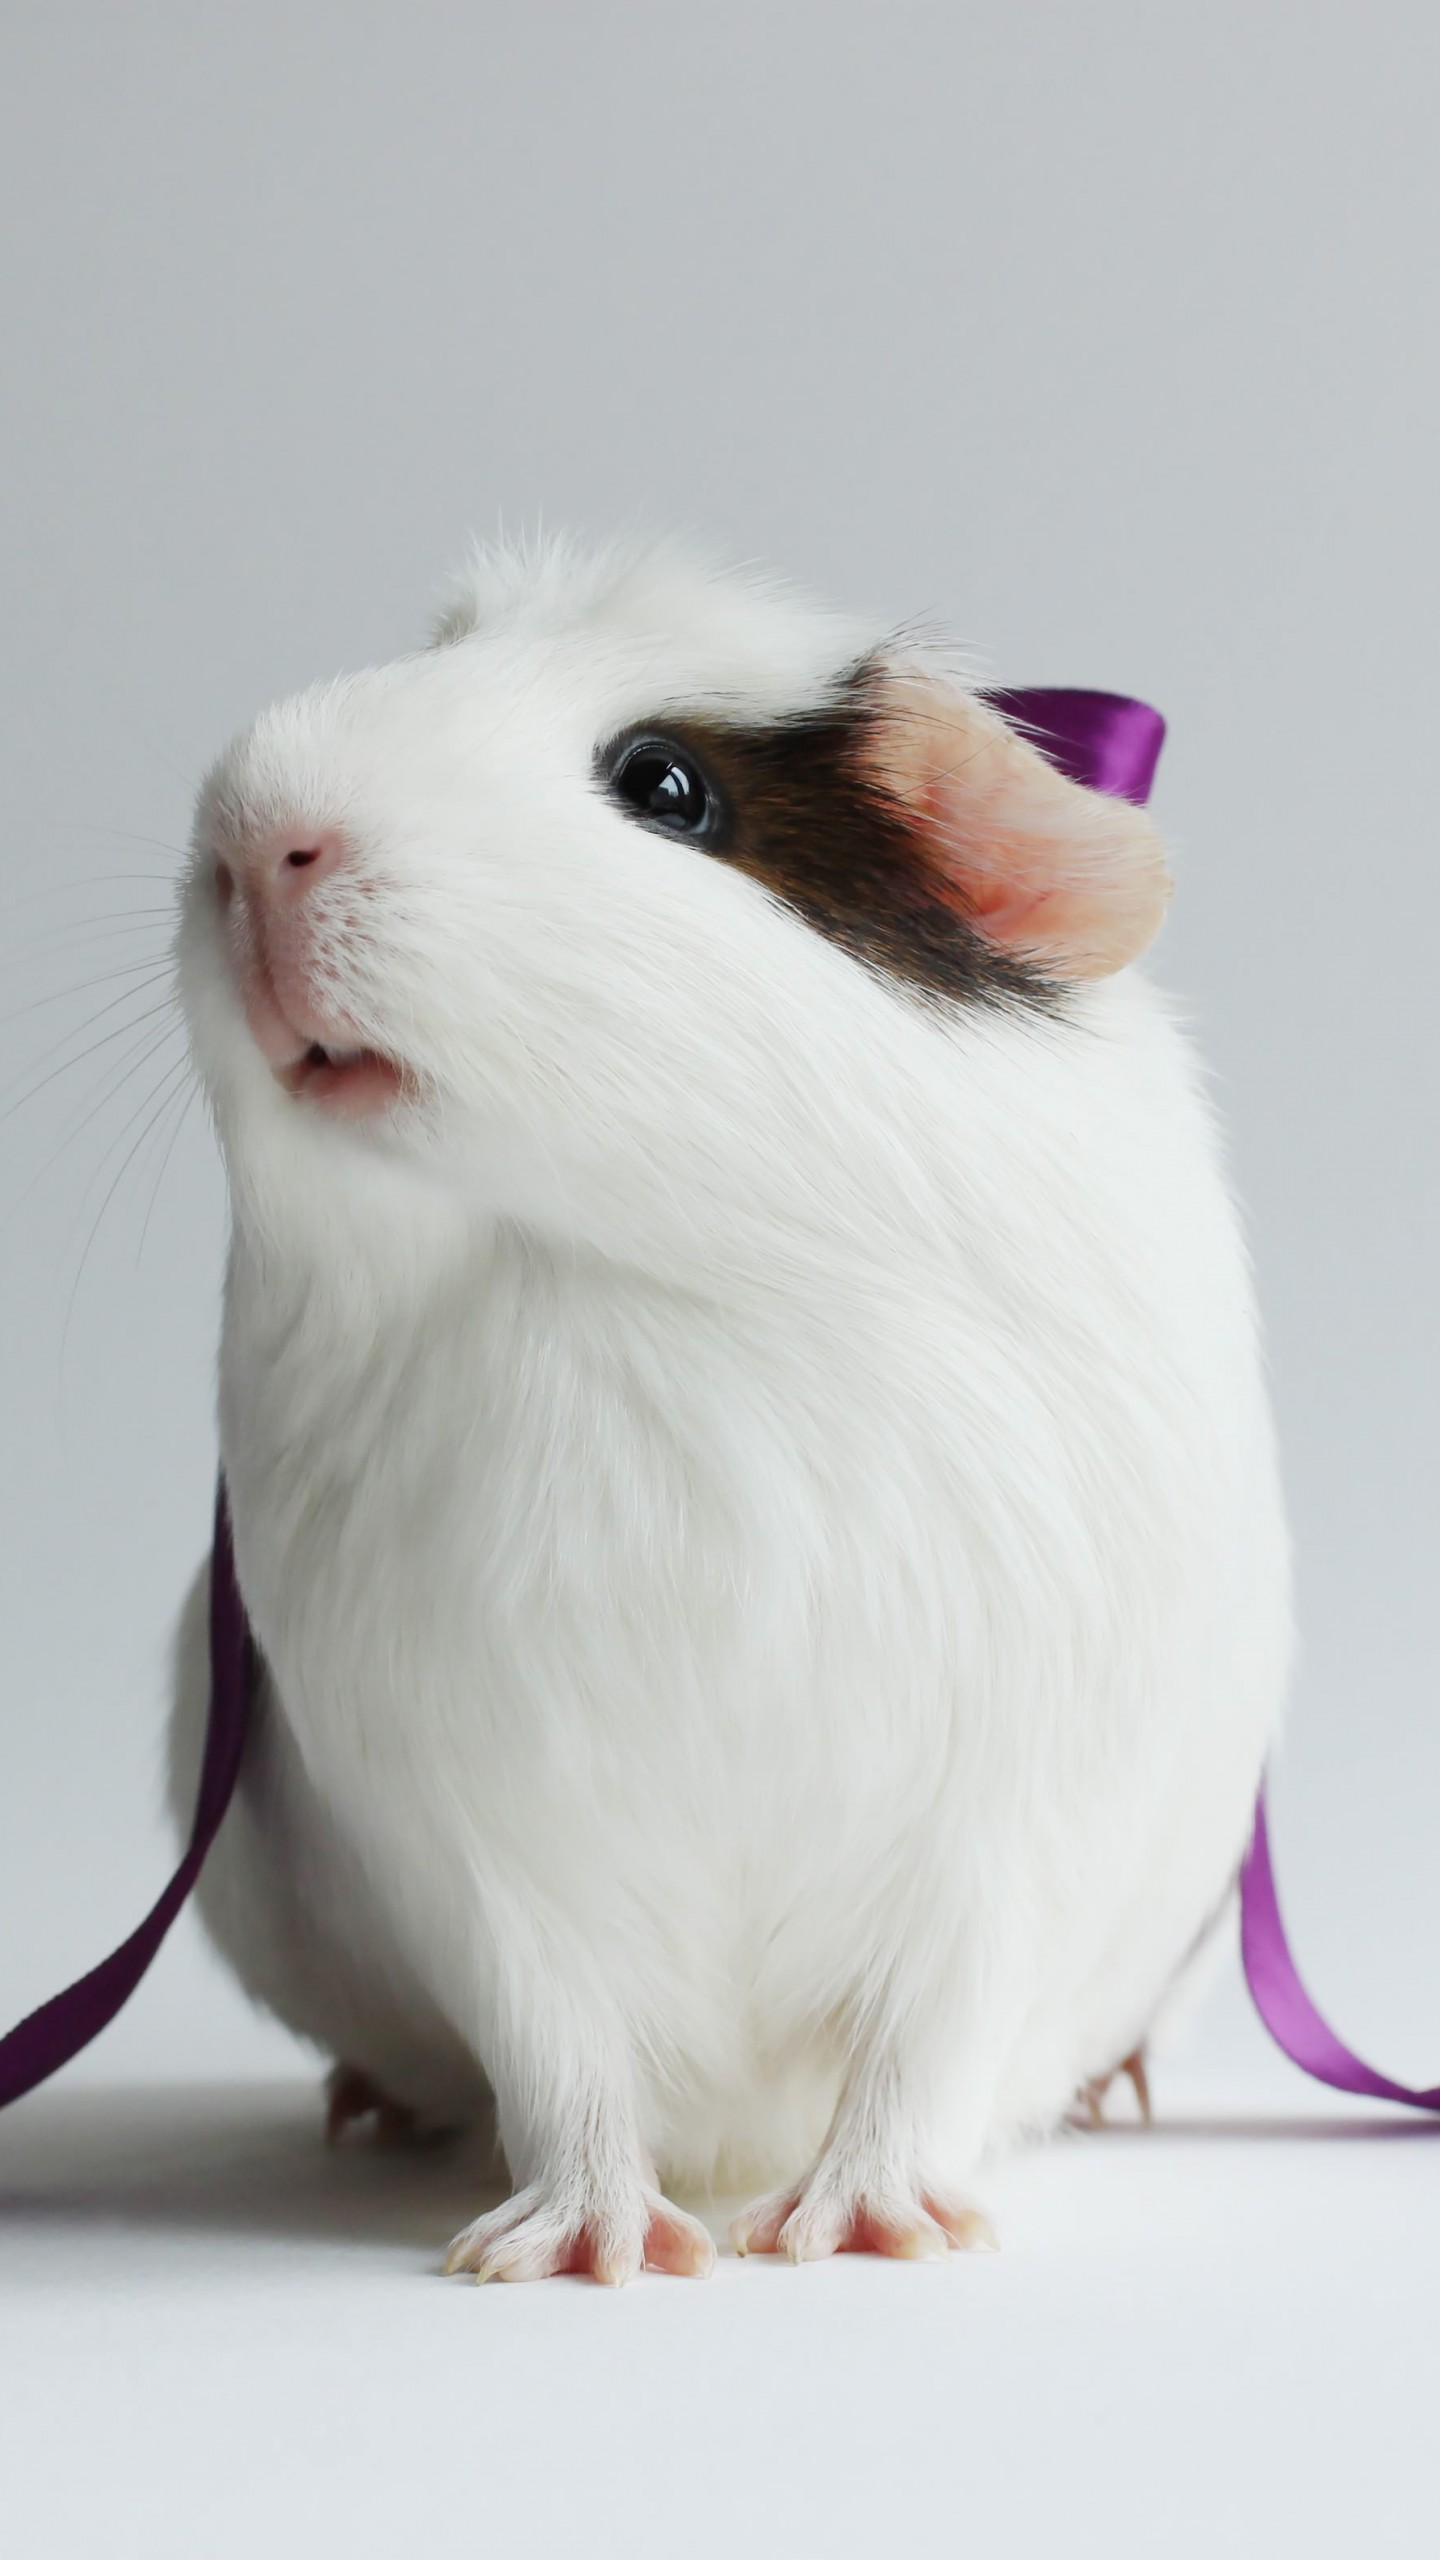 Wallpaper Hamster Cute Hamster White Close Up Purple